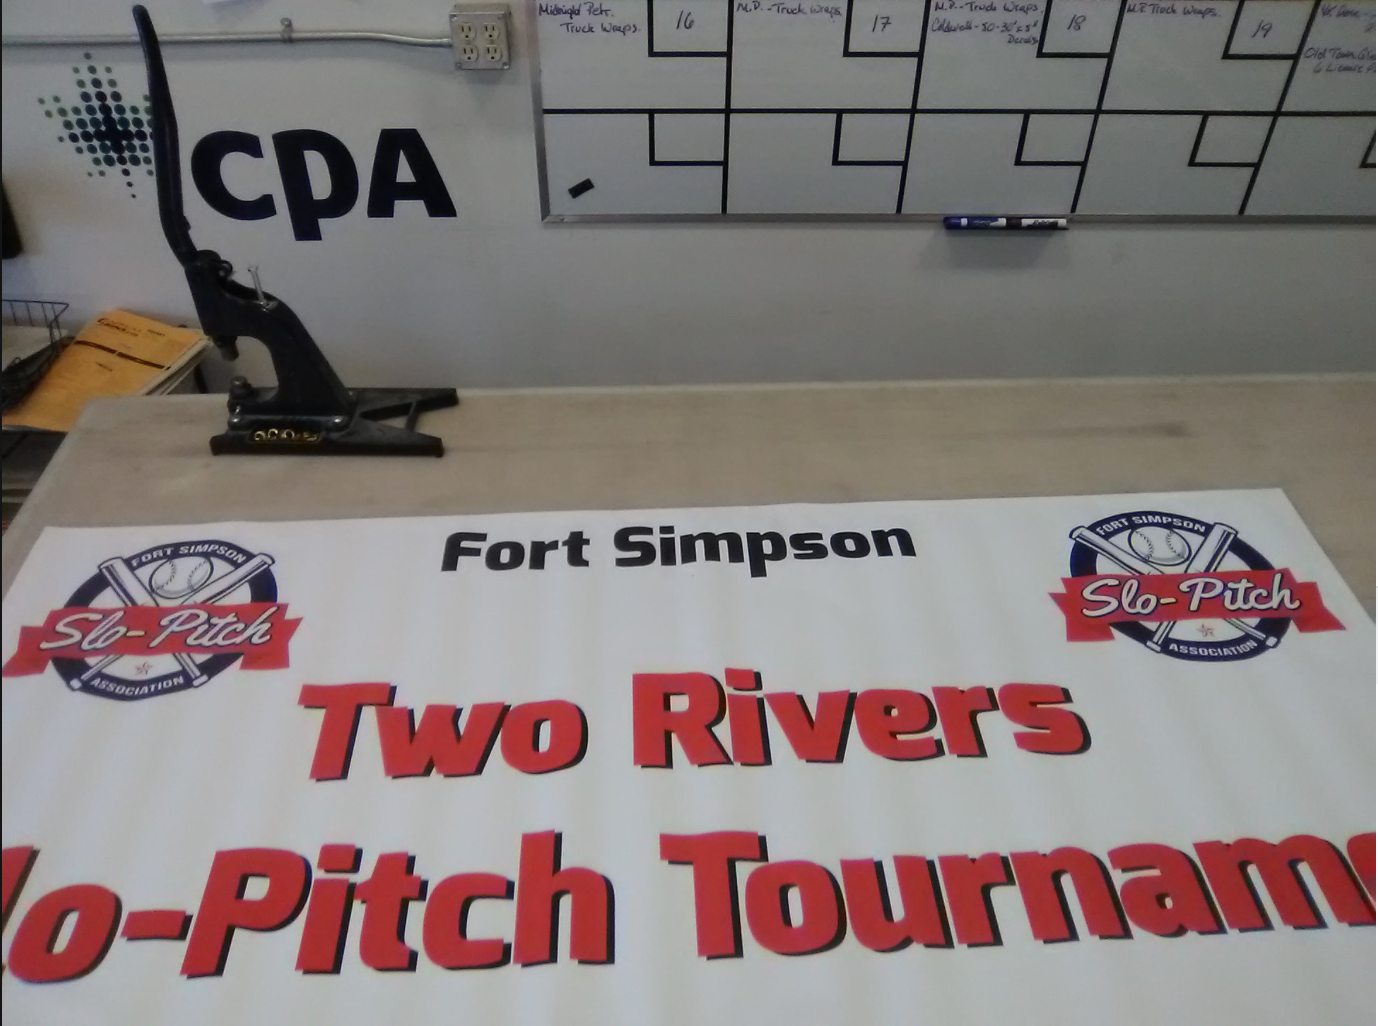 Fort Simpson Slo Pitch Association Event Banners